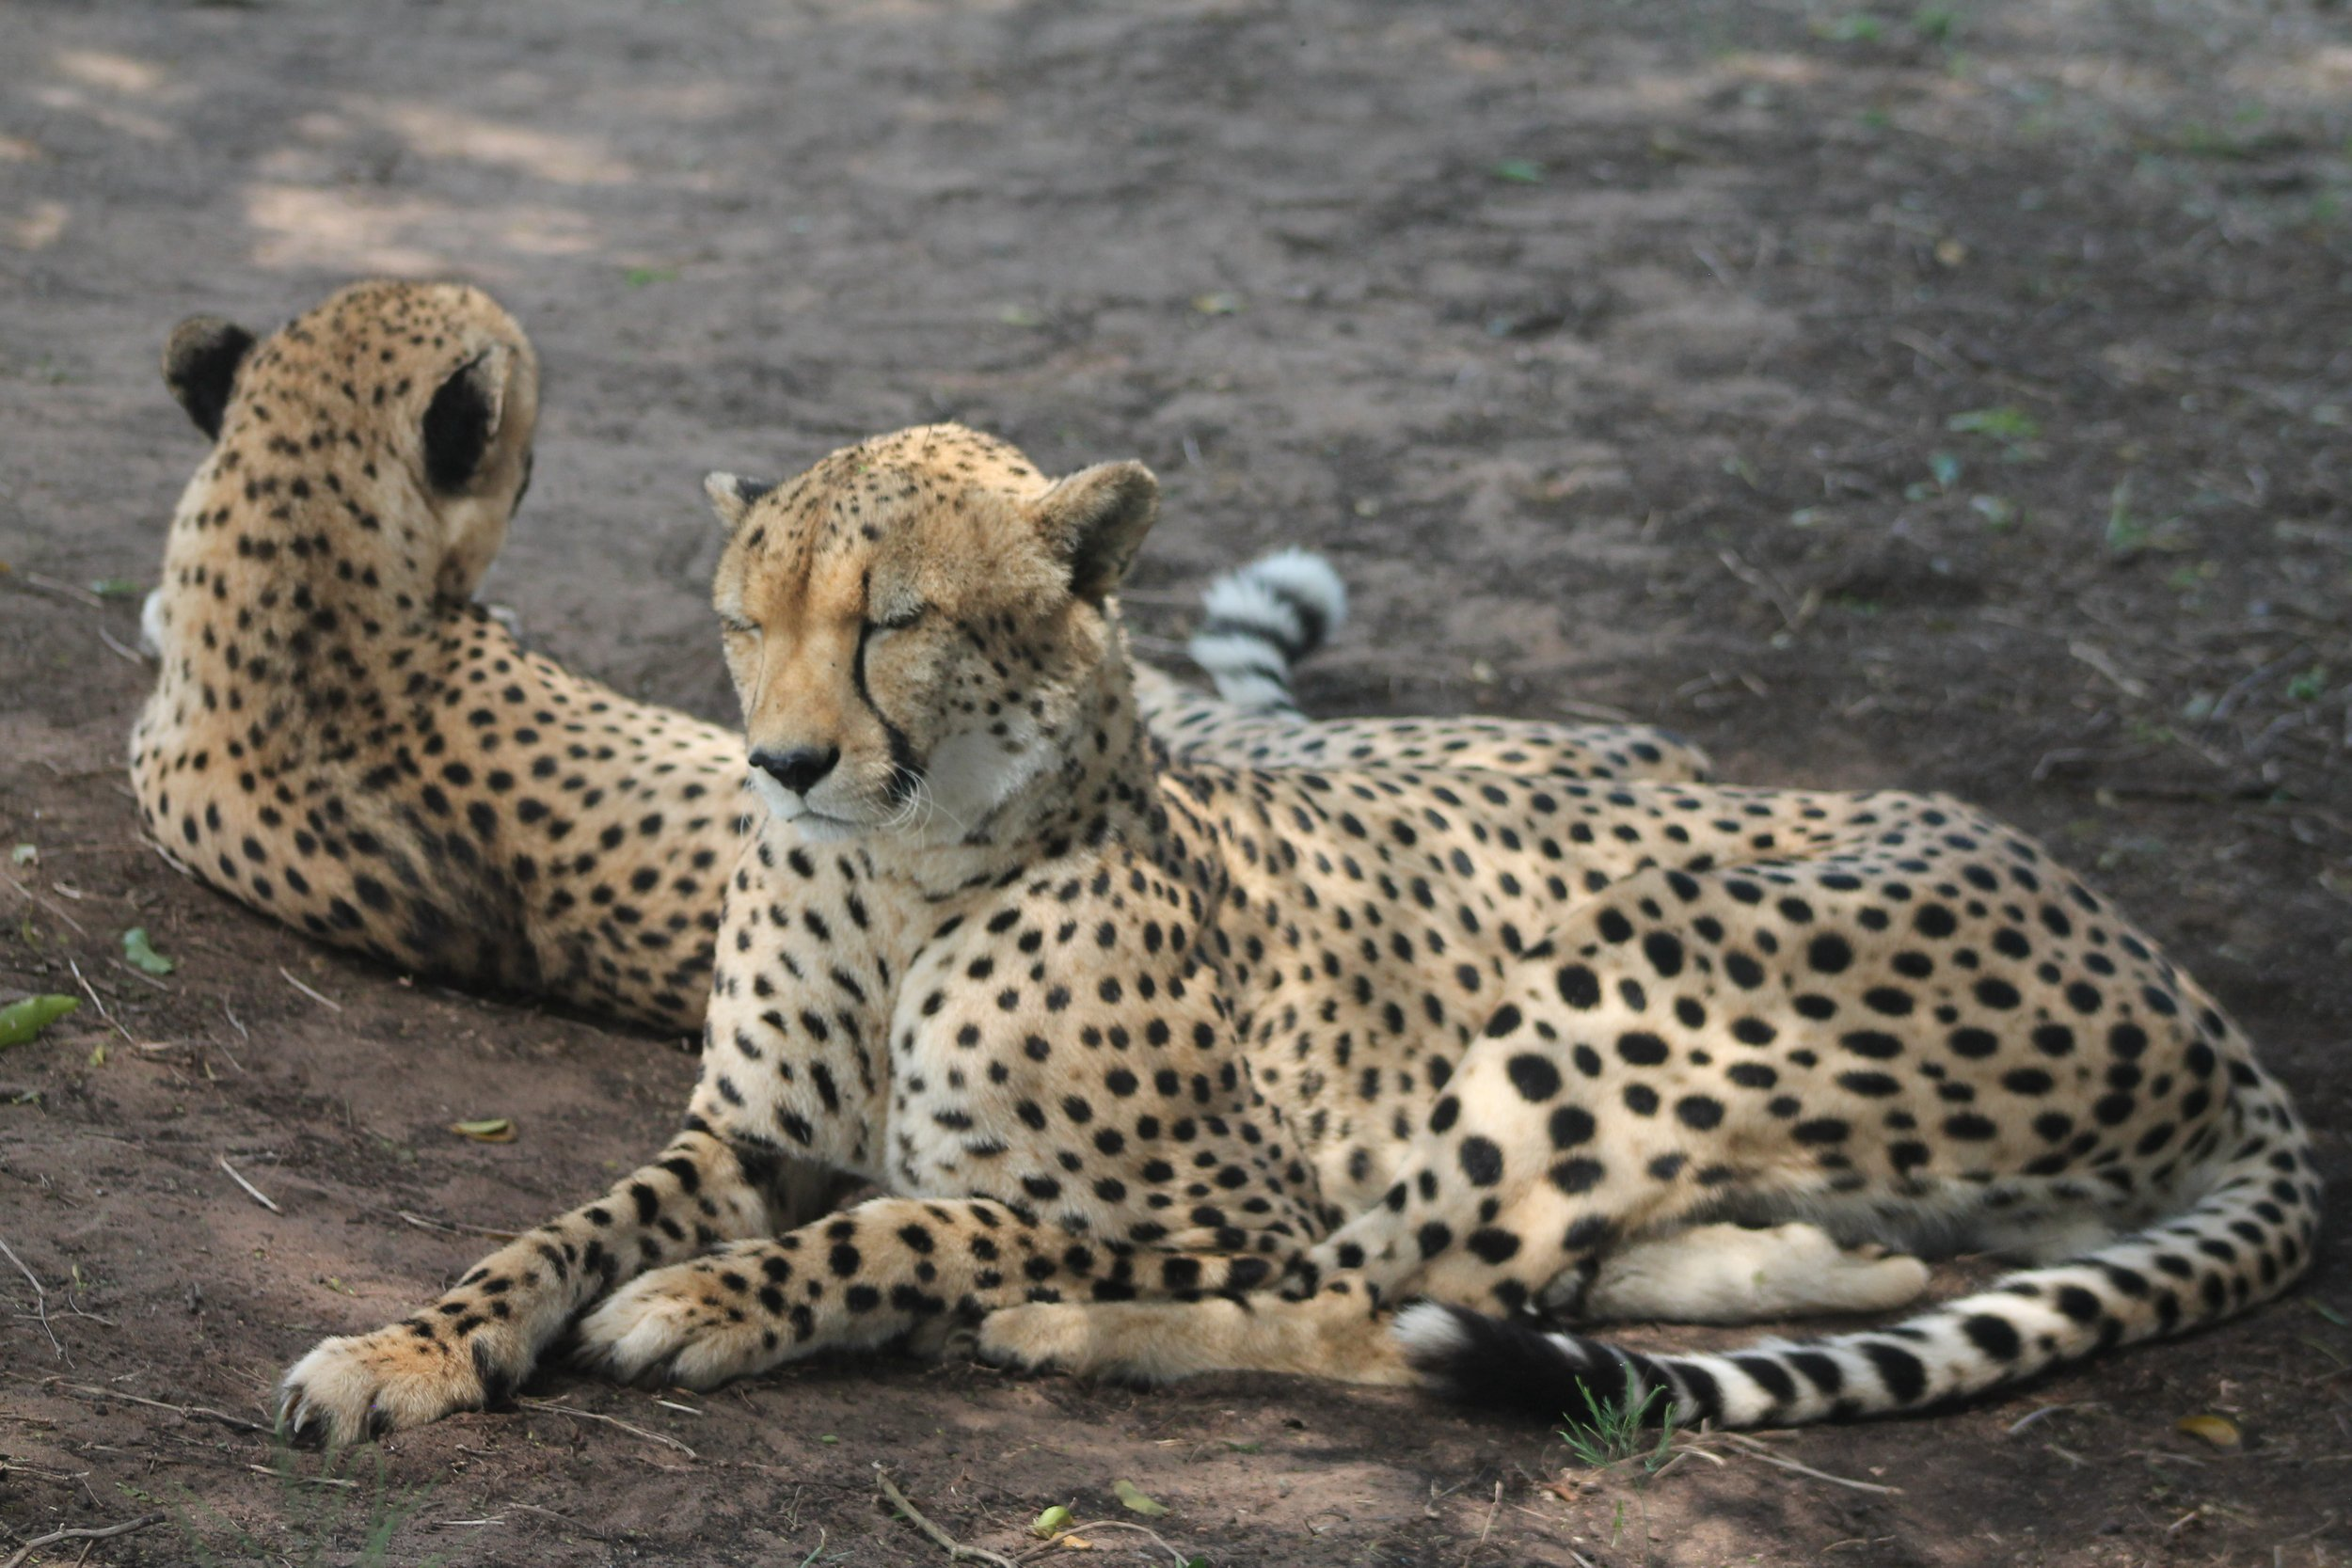 Two cheetahs on the ground